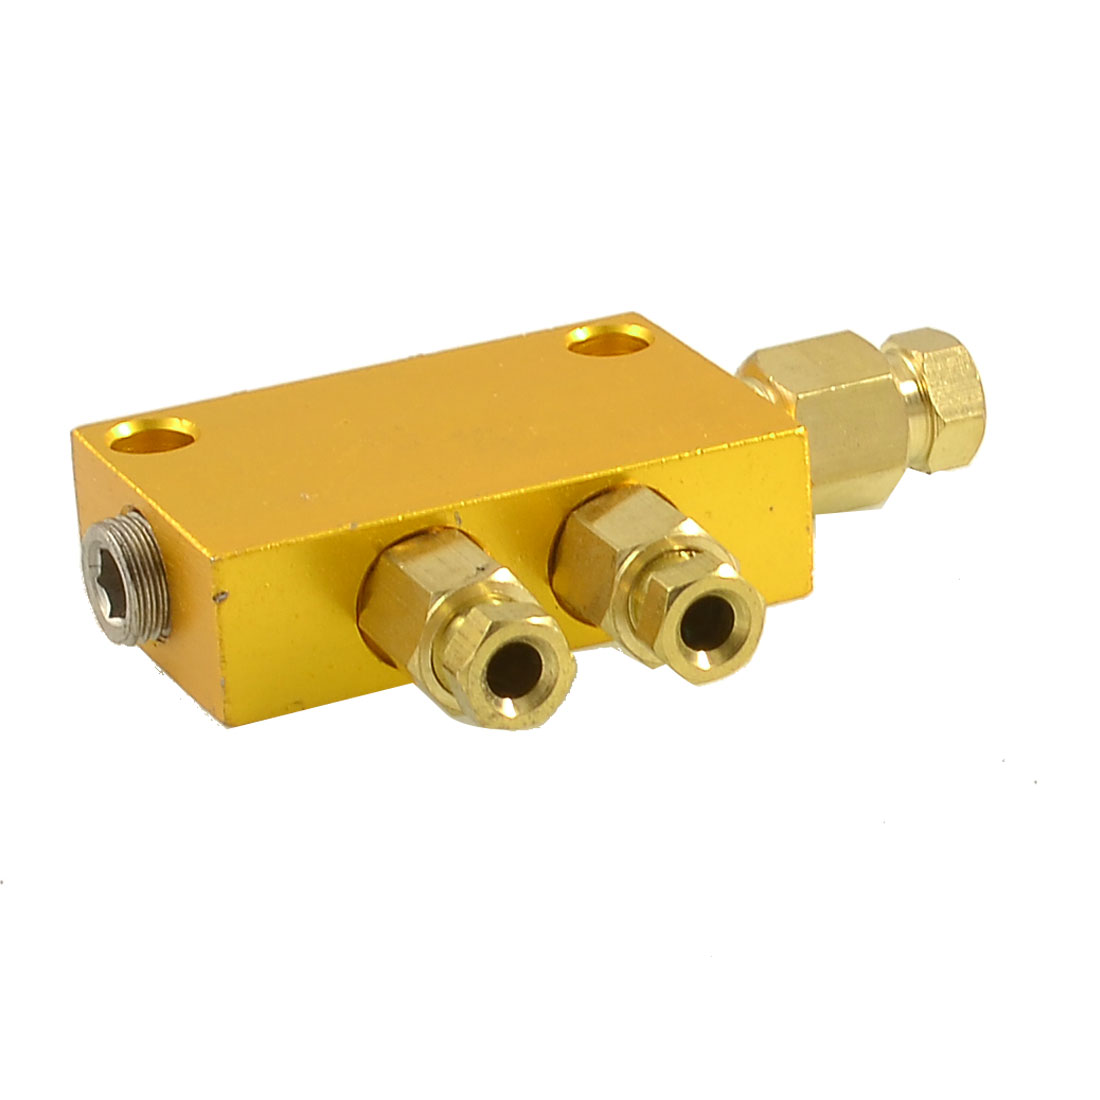 Air Pneumatic Brass Adjustable 2 Ways Distributor Manifold Block